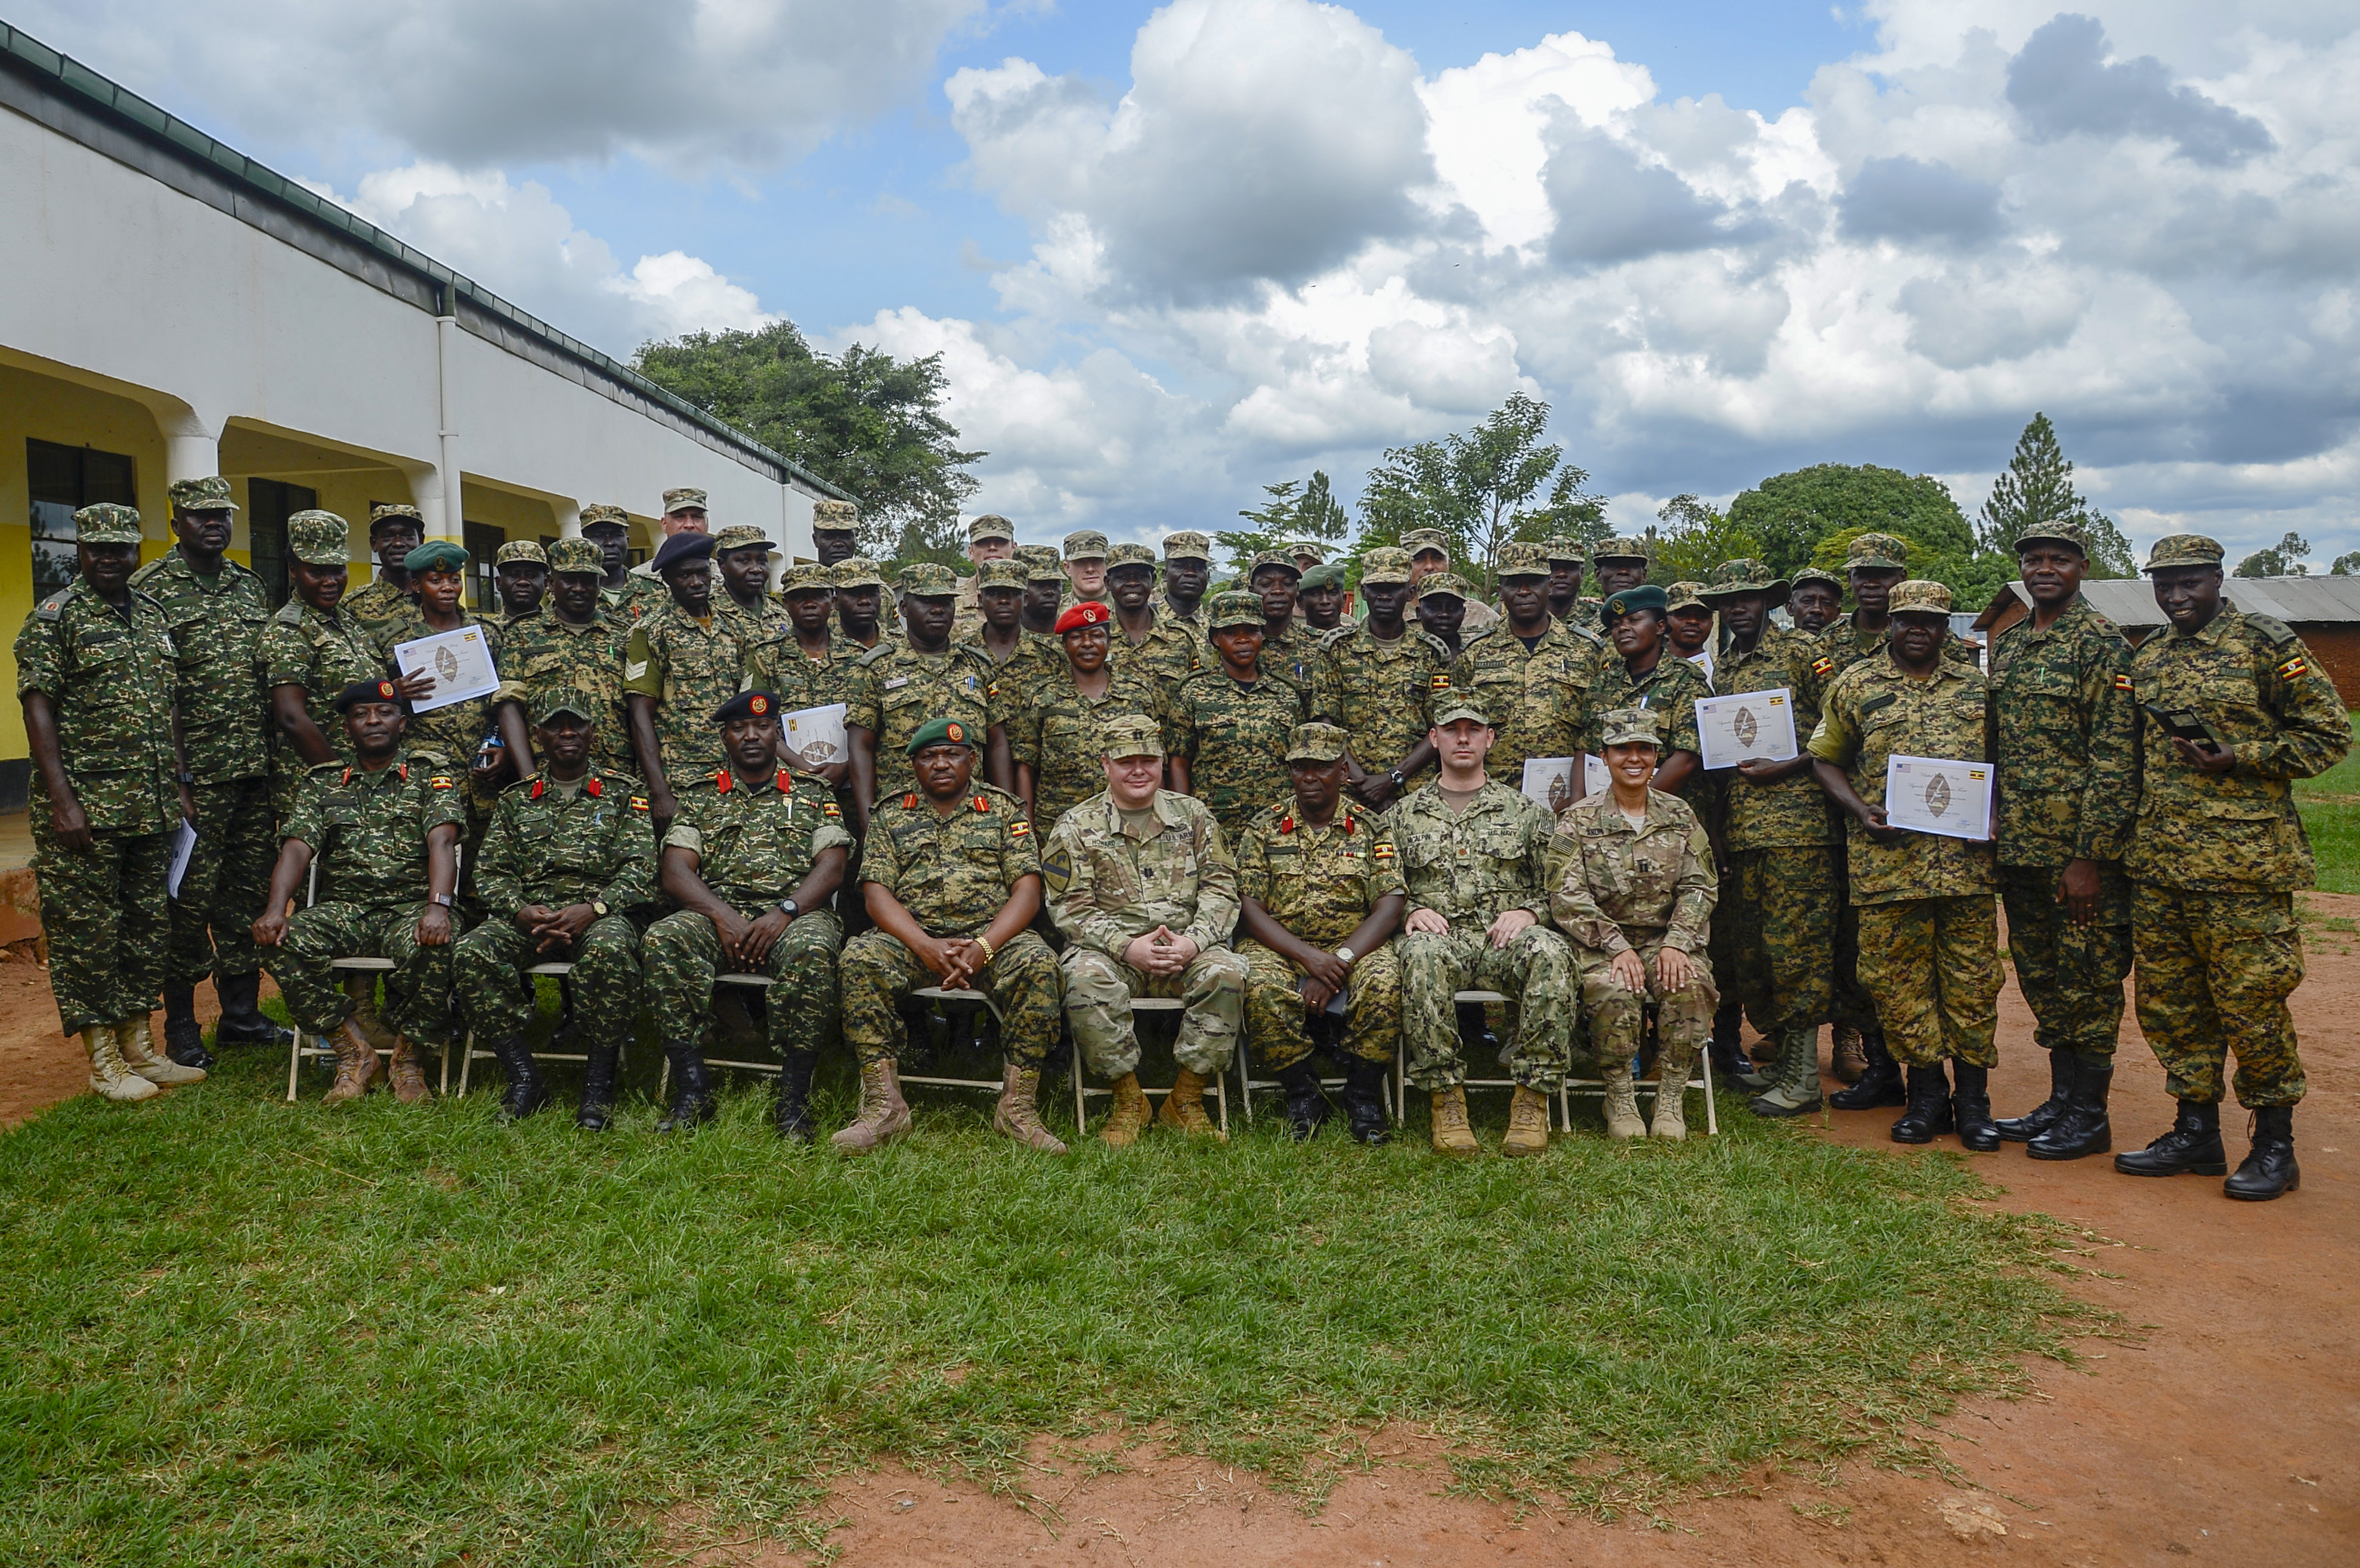 Uganda People's Defense Force (UPDF) Soldiers and U.S. Army Soldiers from the 404th Civil Affairs Battalion, attached to the Combined Joint Task Force - Horn of Africa, pose for a group photo after a graduation ceremony from a 10-week civil affairs operations course provided by members of the 404th at Camp Singo, Uganda, April 13, 2018. The civil affairs course is designed to enhance the UPDF's capability and capacity to support its enduring African Union peacekeeping force and African Union Mission in Somalia mandates through civil military cooperation. (U.S. Navy Photo by Mass Communication Specialist 2nd Class Timothy M. Ahearn)